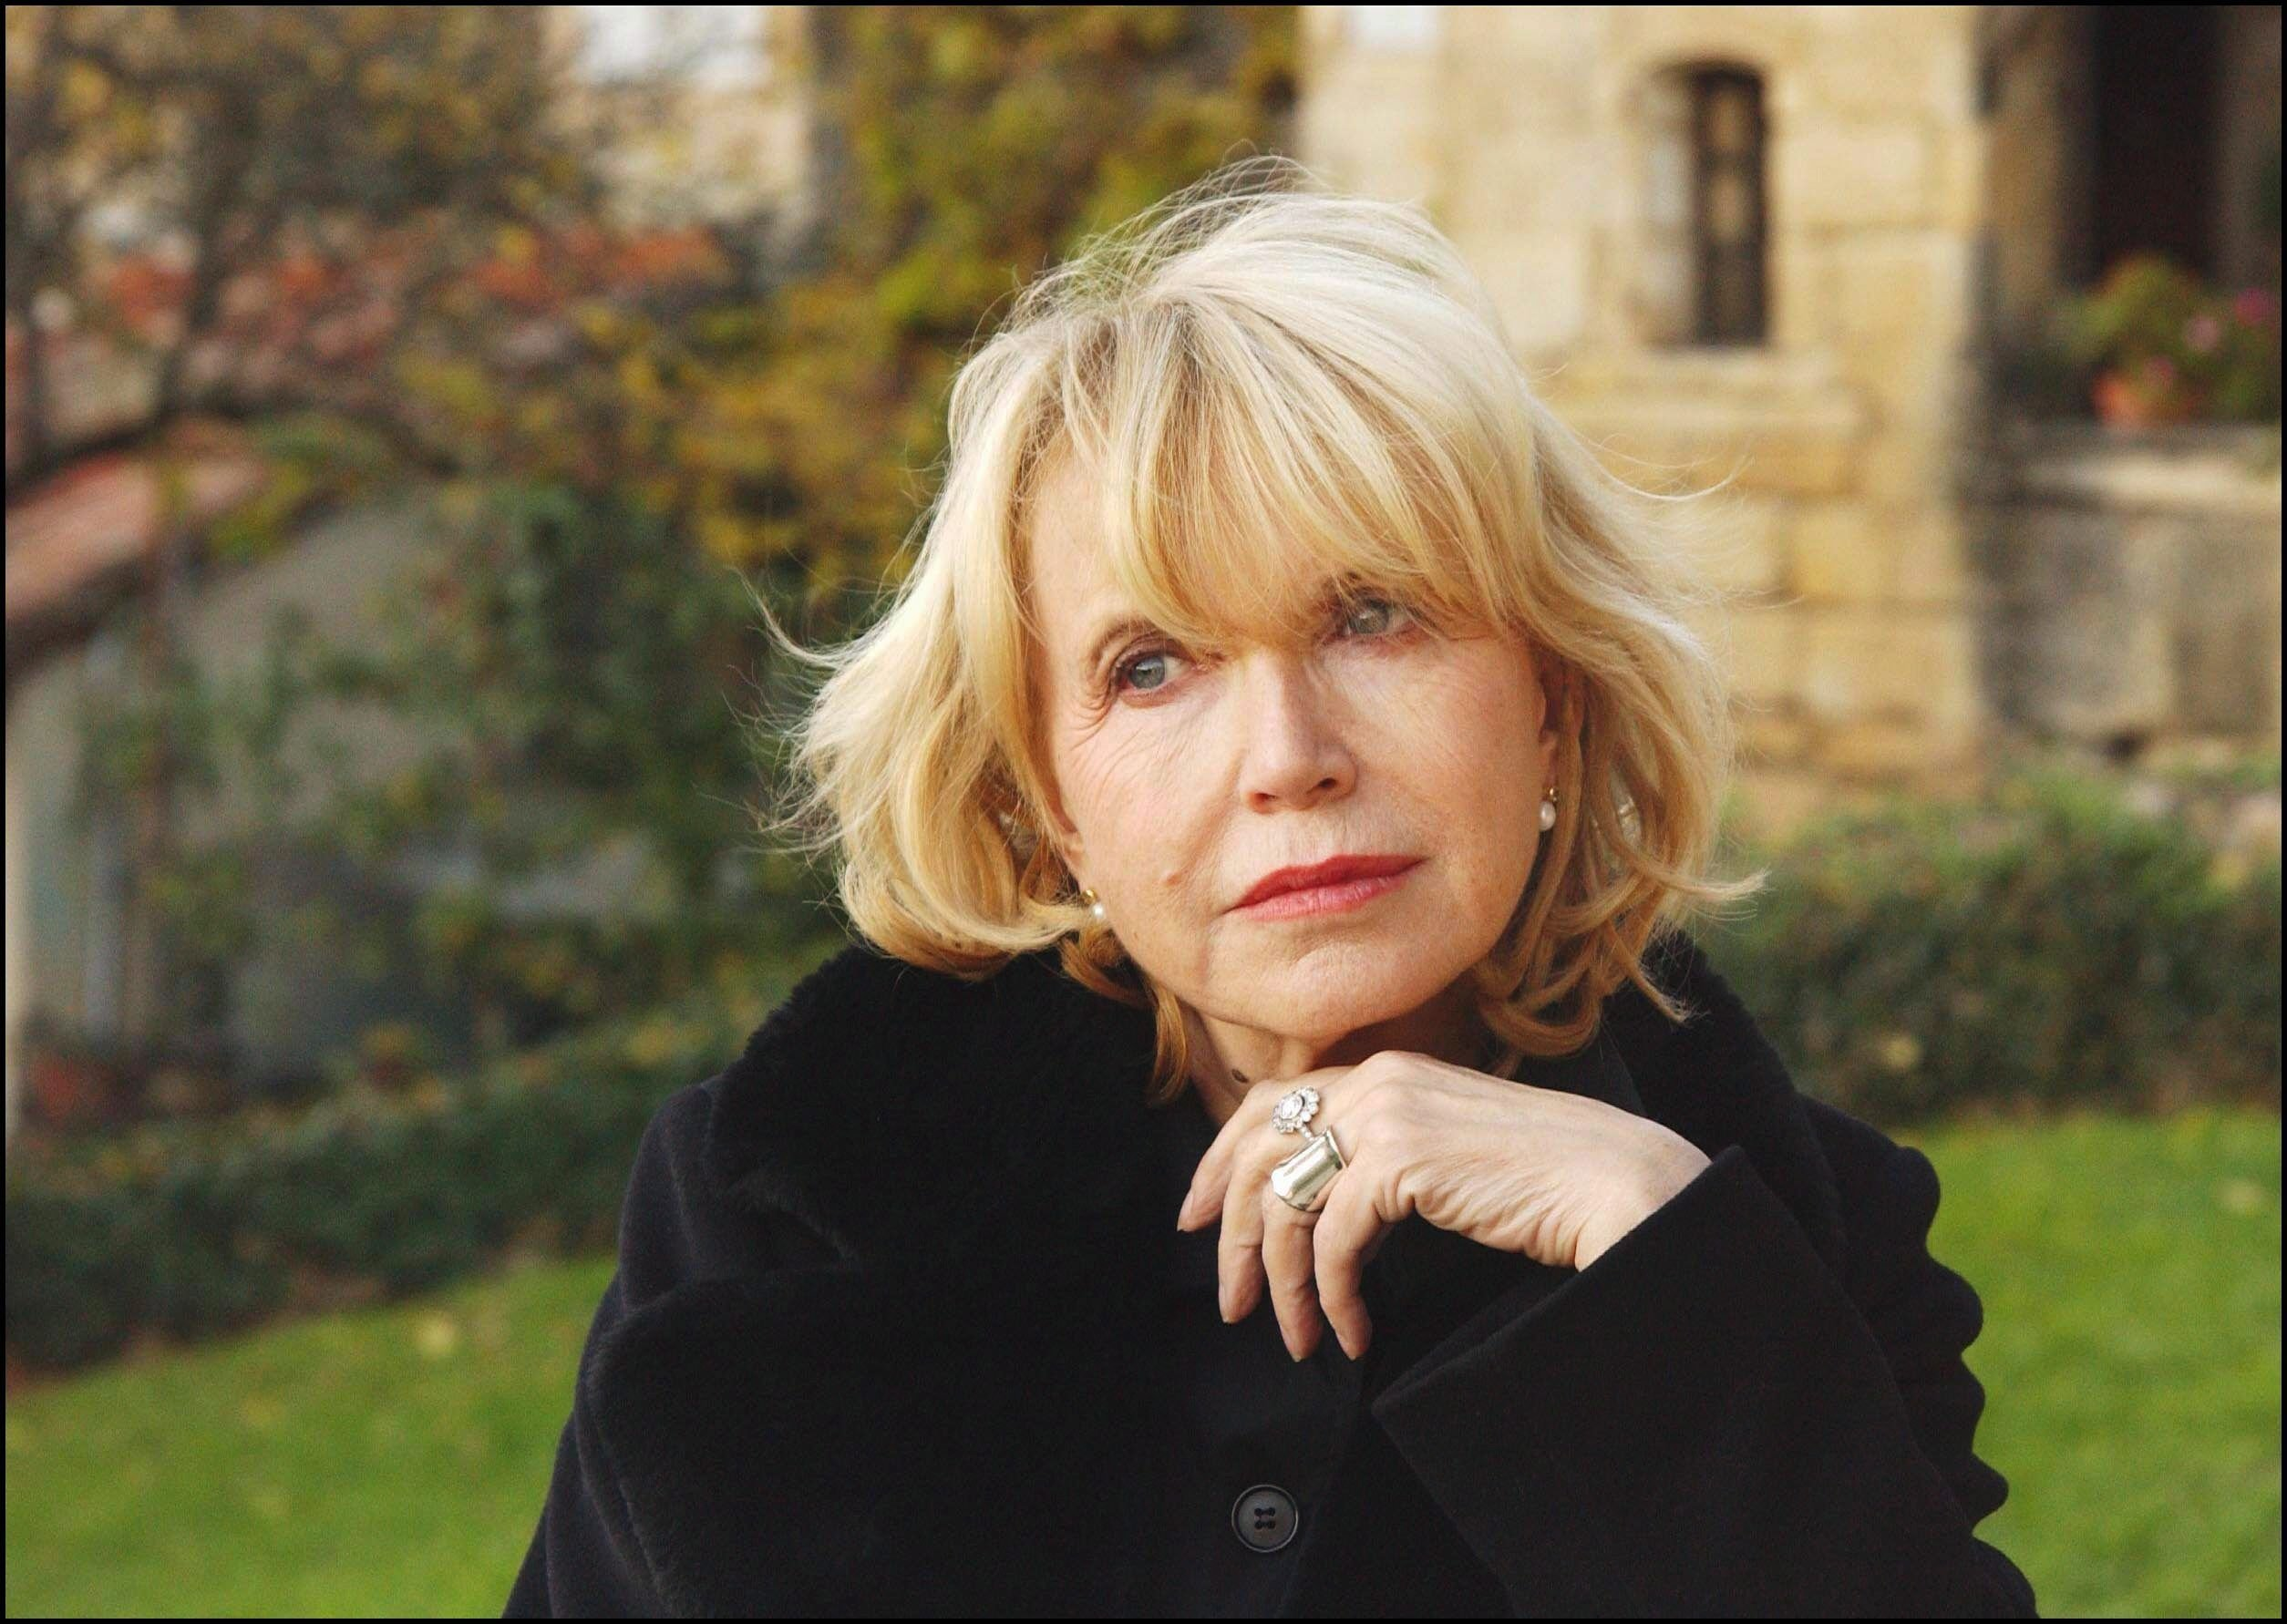 Bulle Ogier au 12e festival du film de Sarlat, 11 août /2003. | Photo : Getty Images